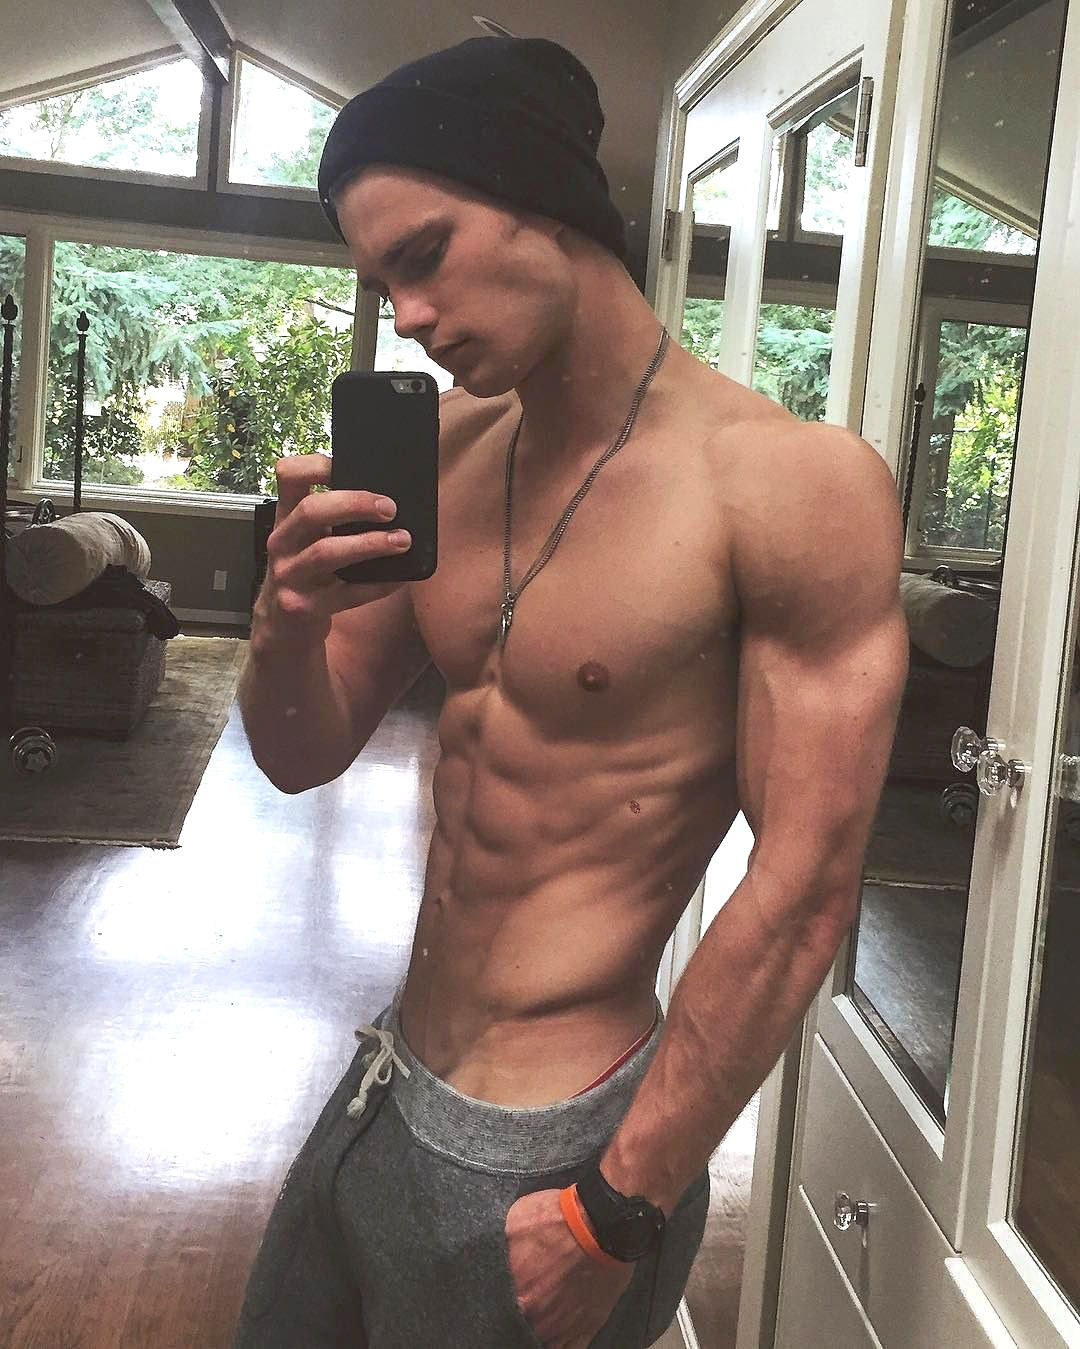 fit-muscle-dude-shirtless-body-shameless-selfie